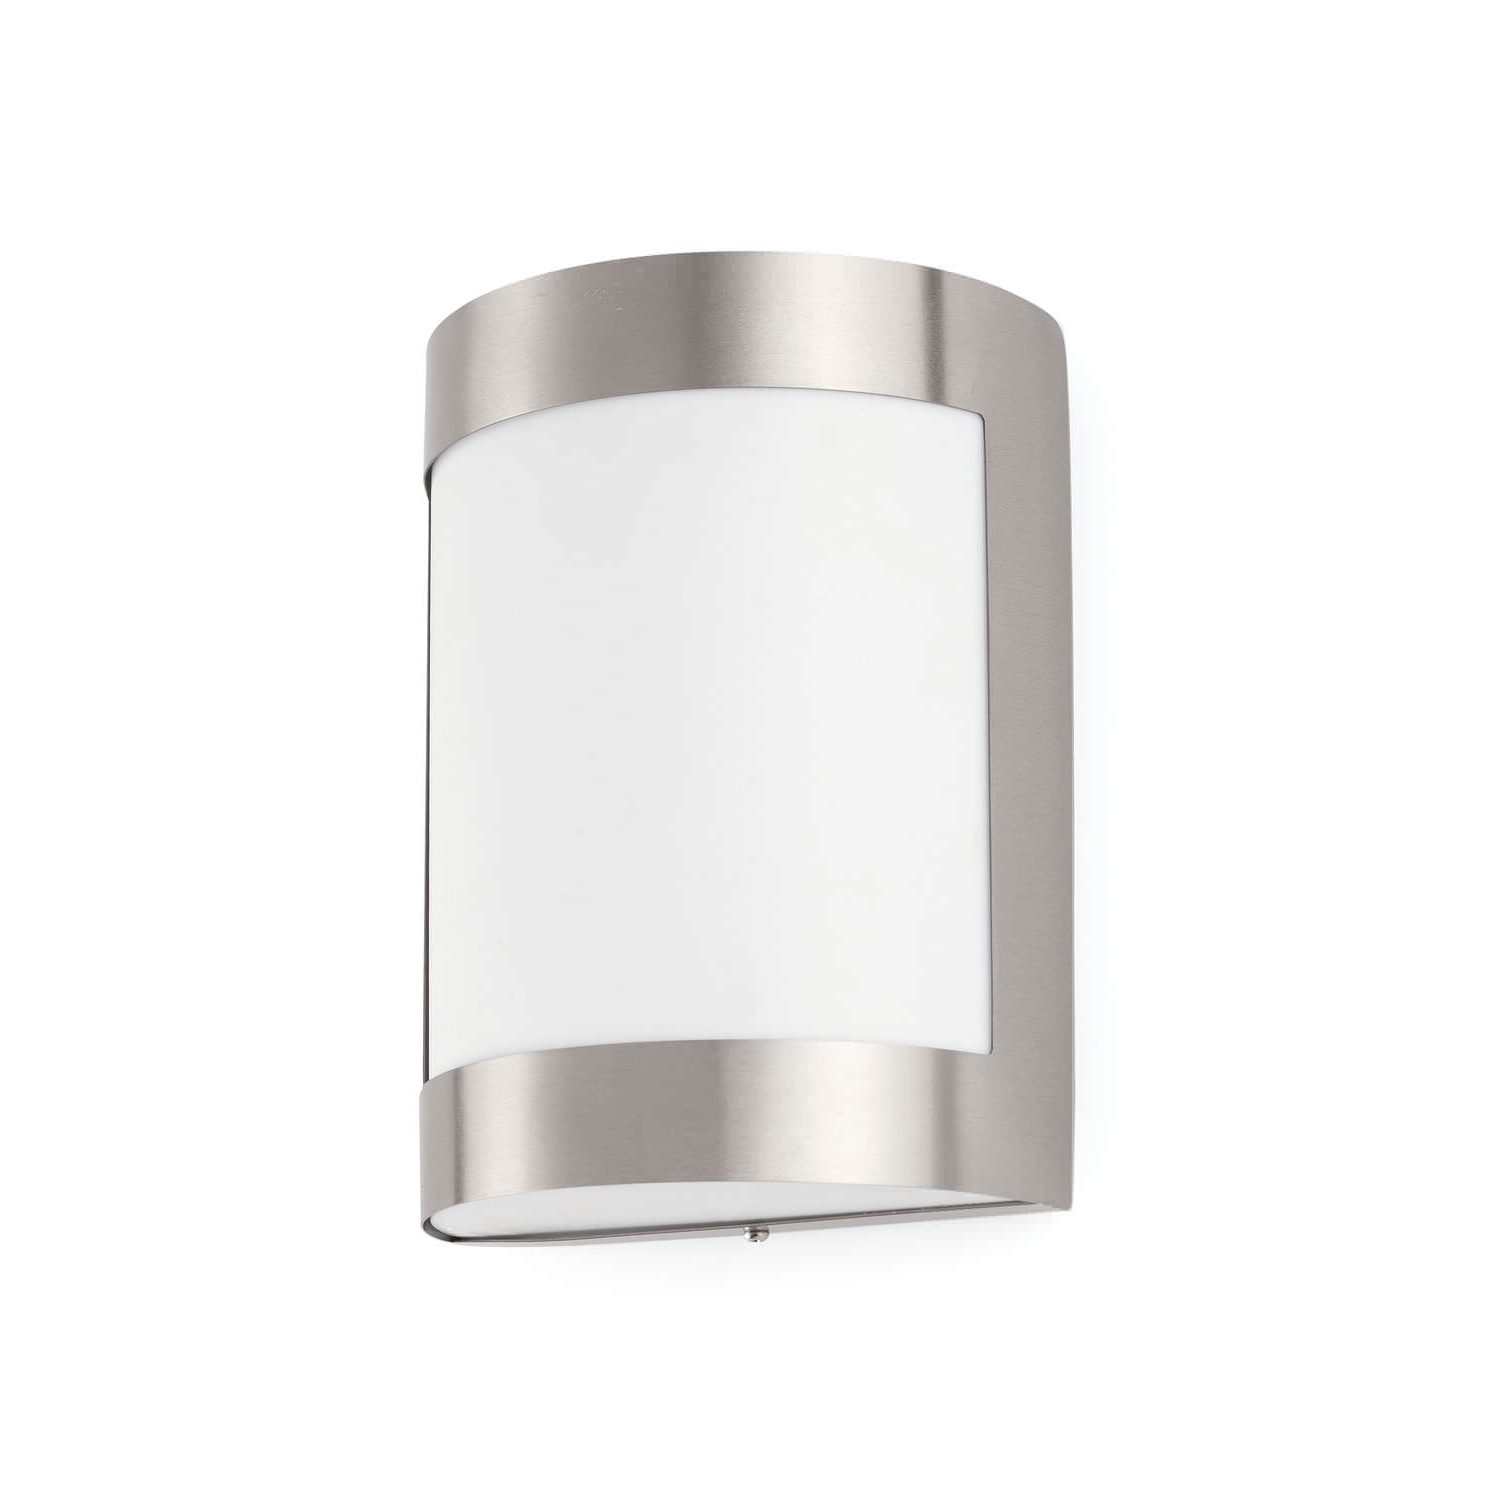 Silver Outdoor Wall Lights Inside Popular Contemporary Wall Light / Outdoor / Stainless Steel / Polycarbonate (View 19 of 20)